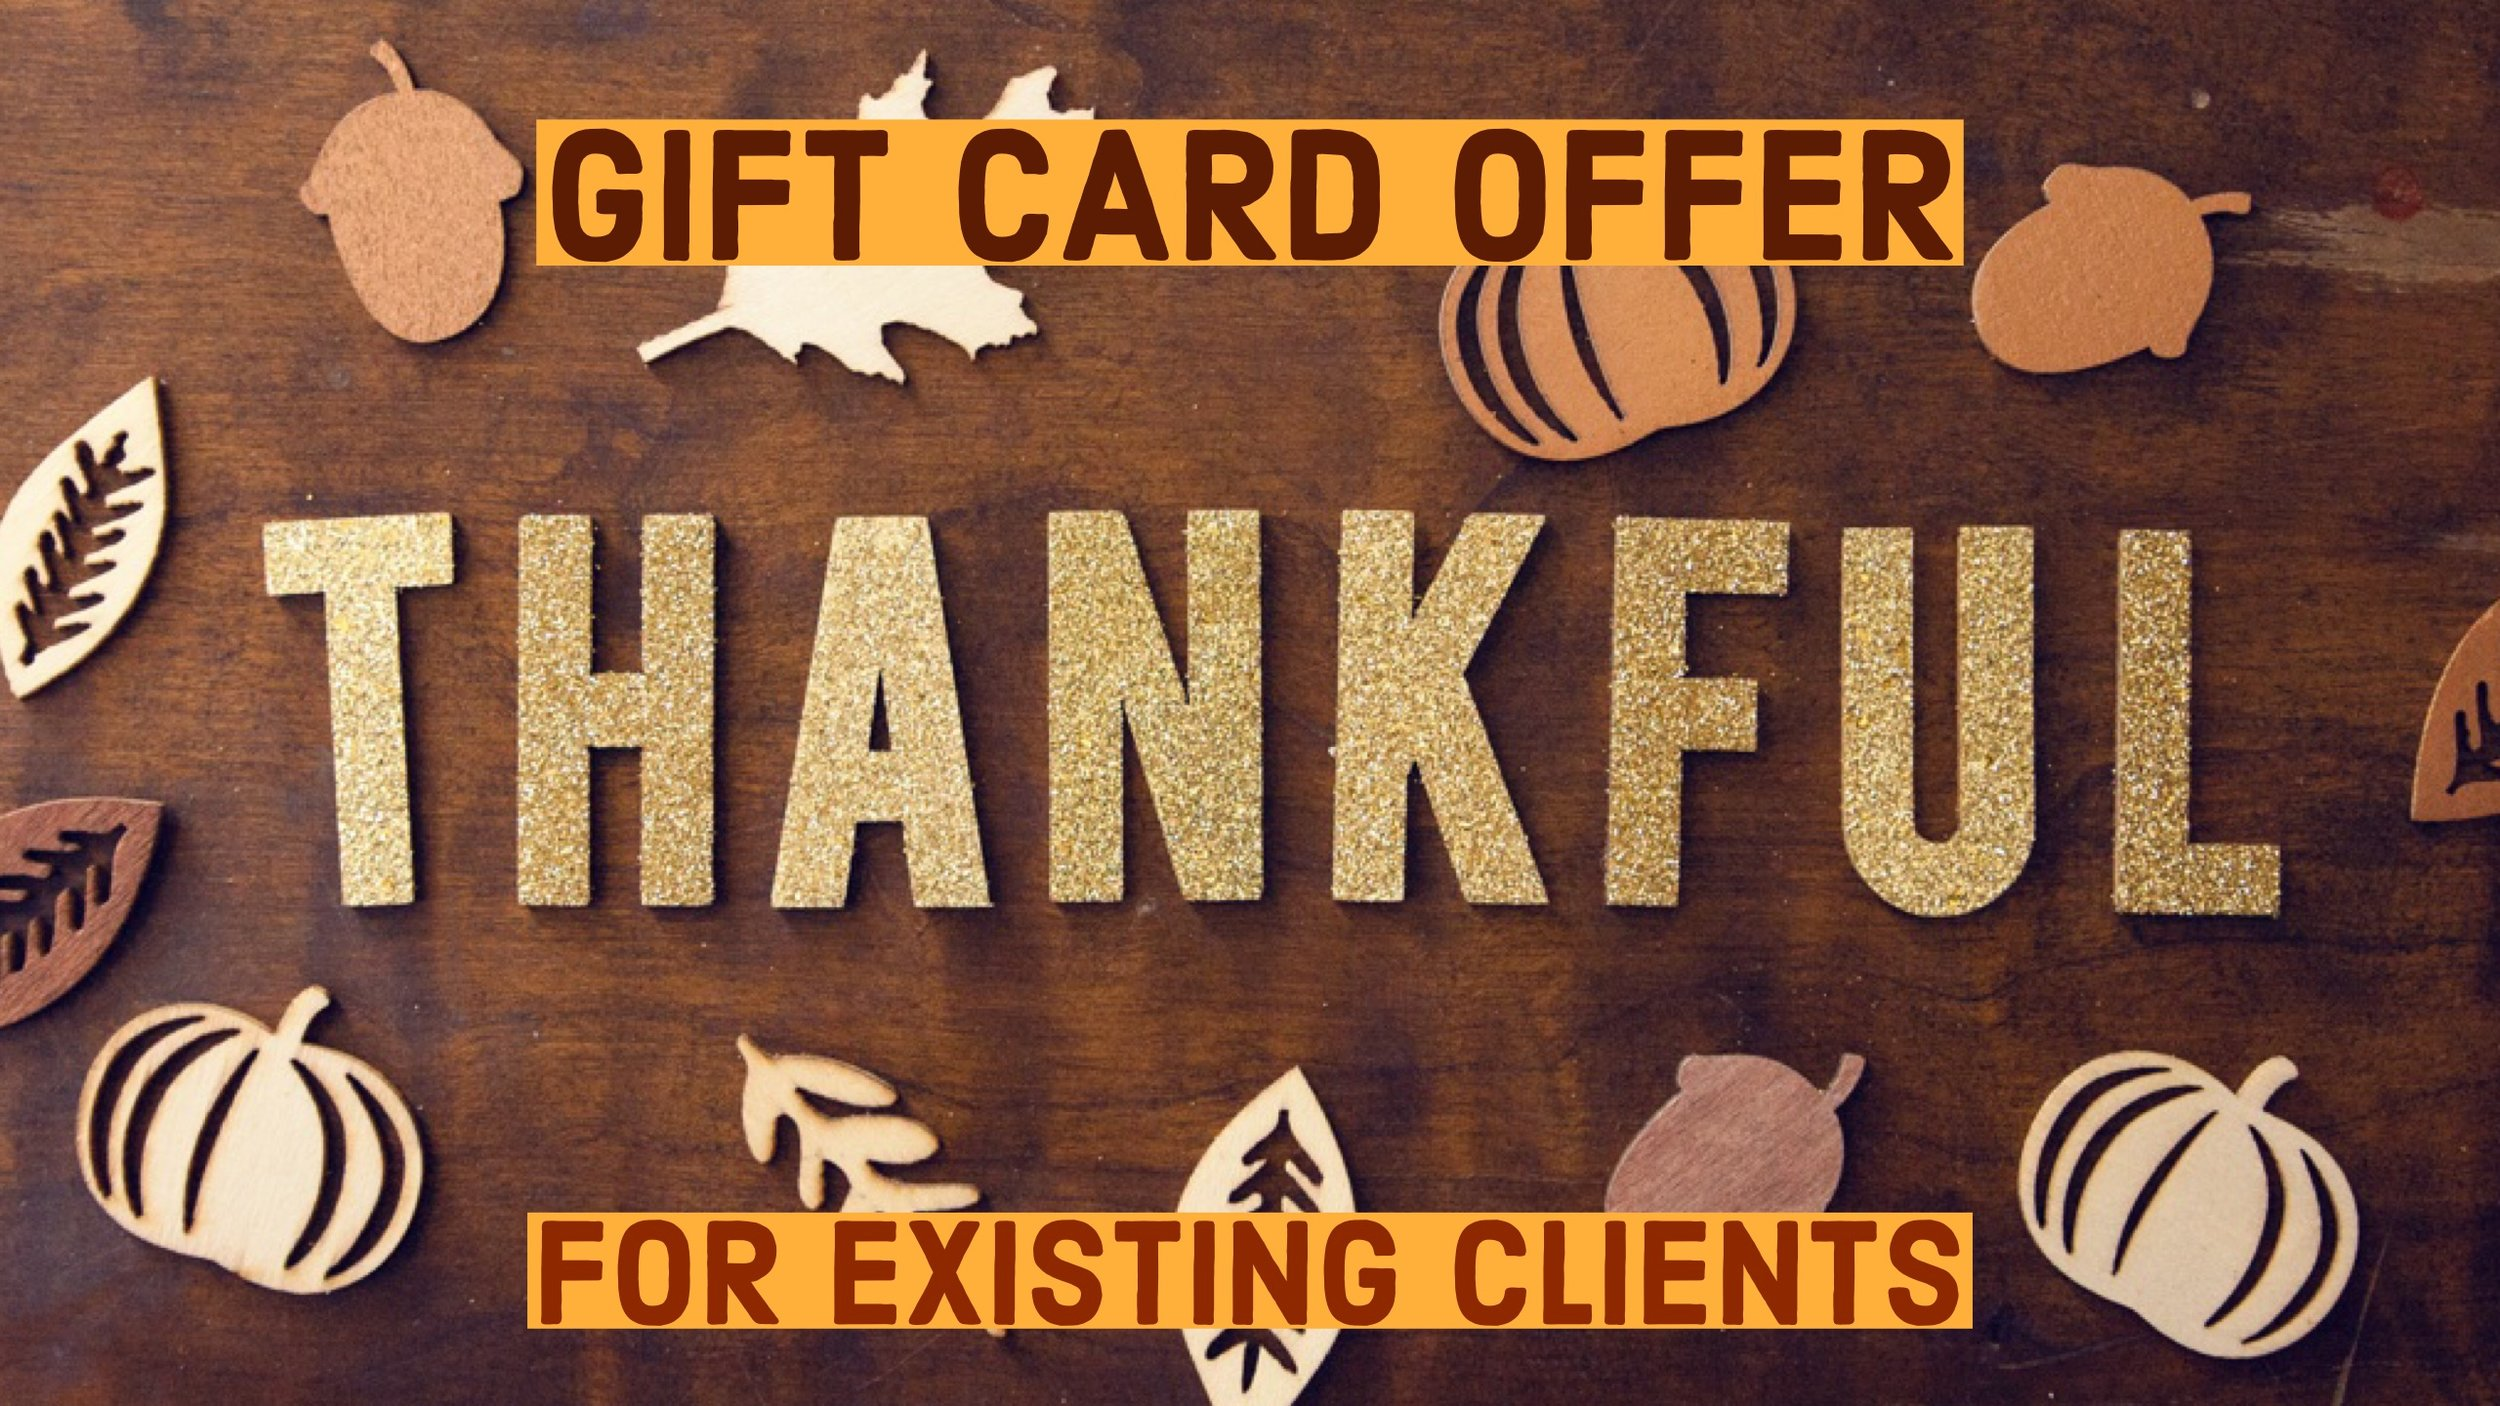 Nice Guy Technology LLC - 2018 Gift Card Offer For Existing Clients